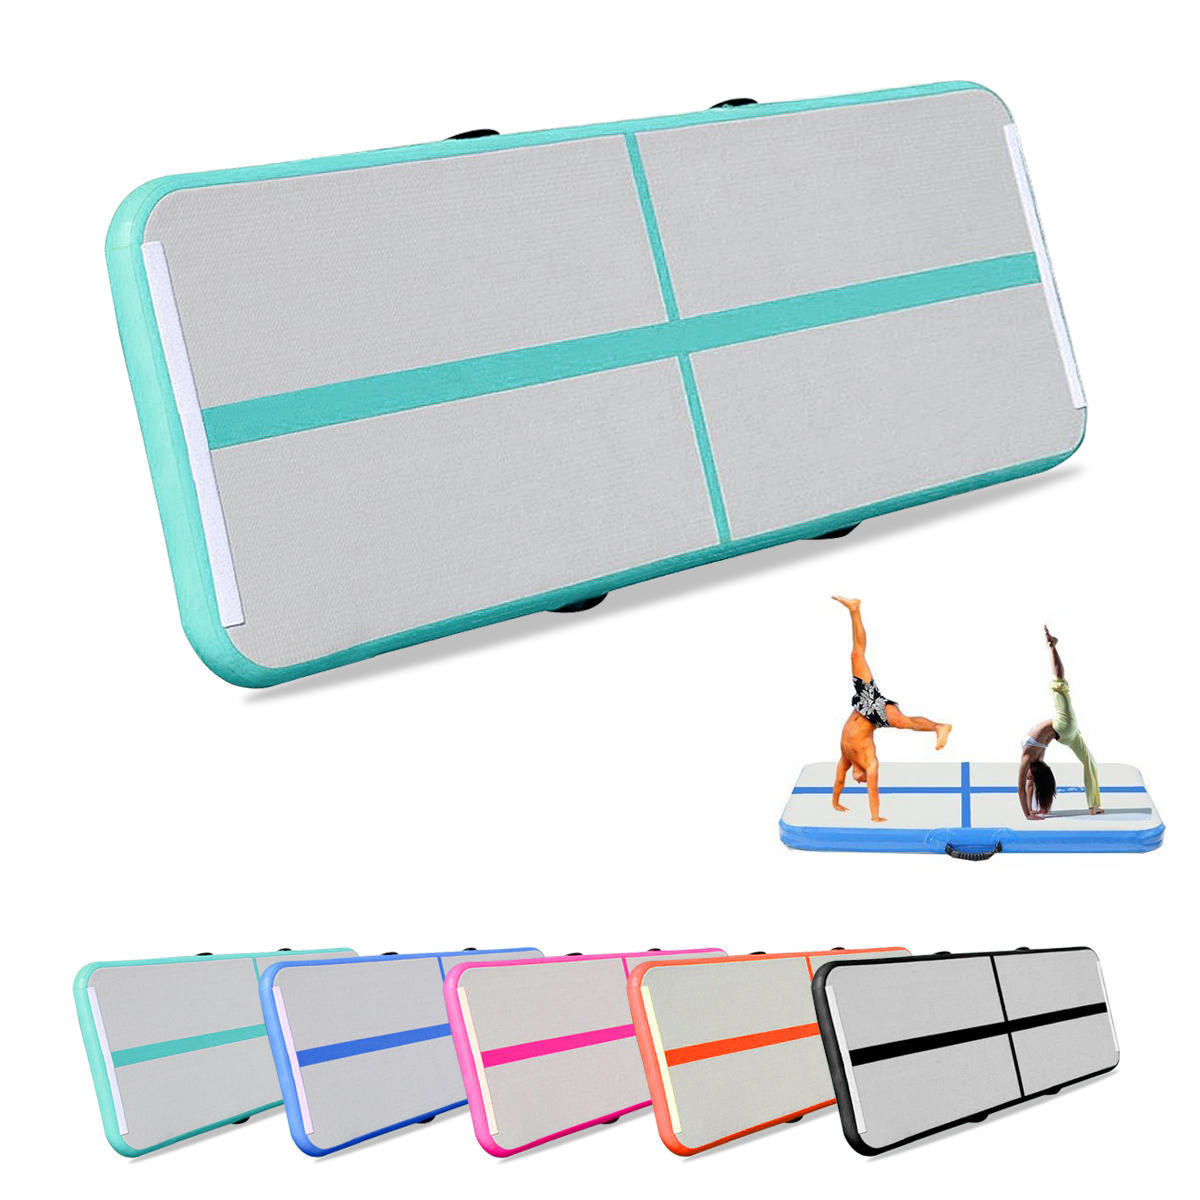 xxinch gym airtrack gymnastics mat inflatable gym